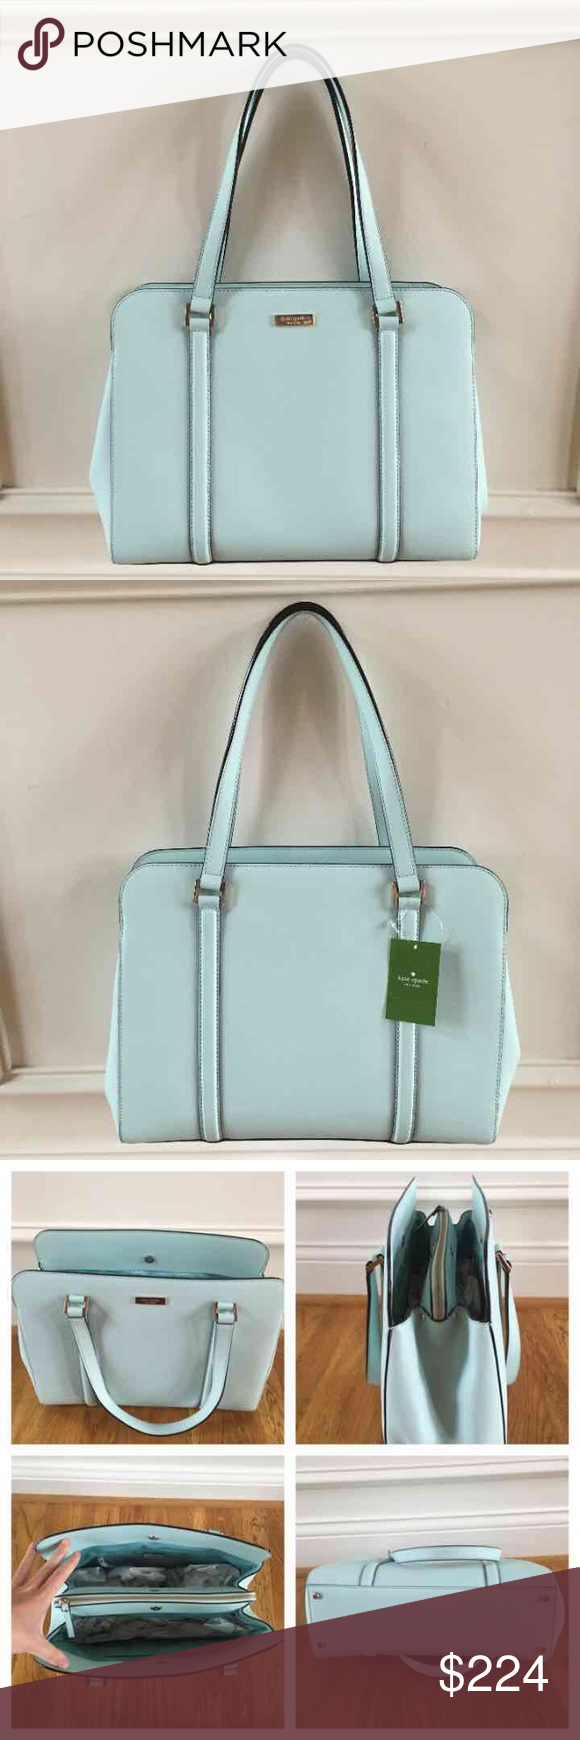 ❗️SALE❗️$358 Kate Spade purse New with tags $358 Kate spade miles newbury lane purse in graceblue// brand new, perfect condition, never worn before. Kate Spade Bags Shoulder Bags